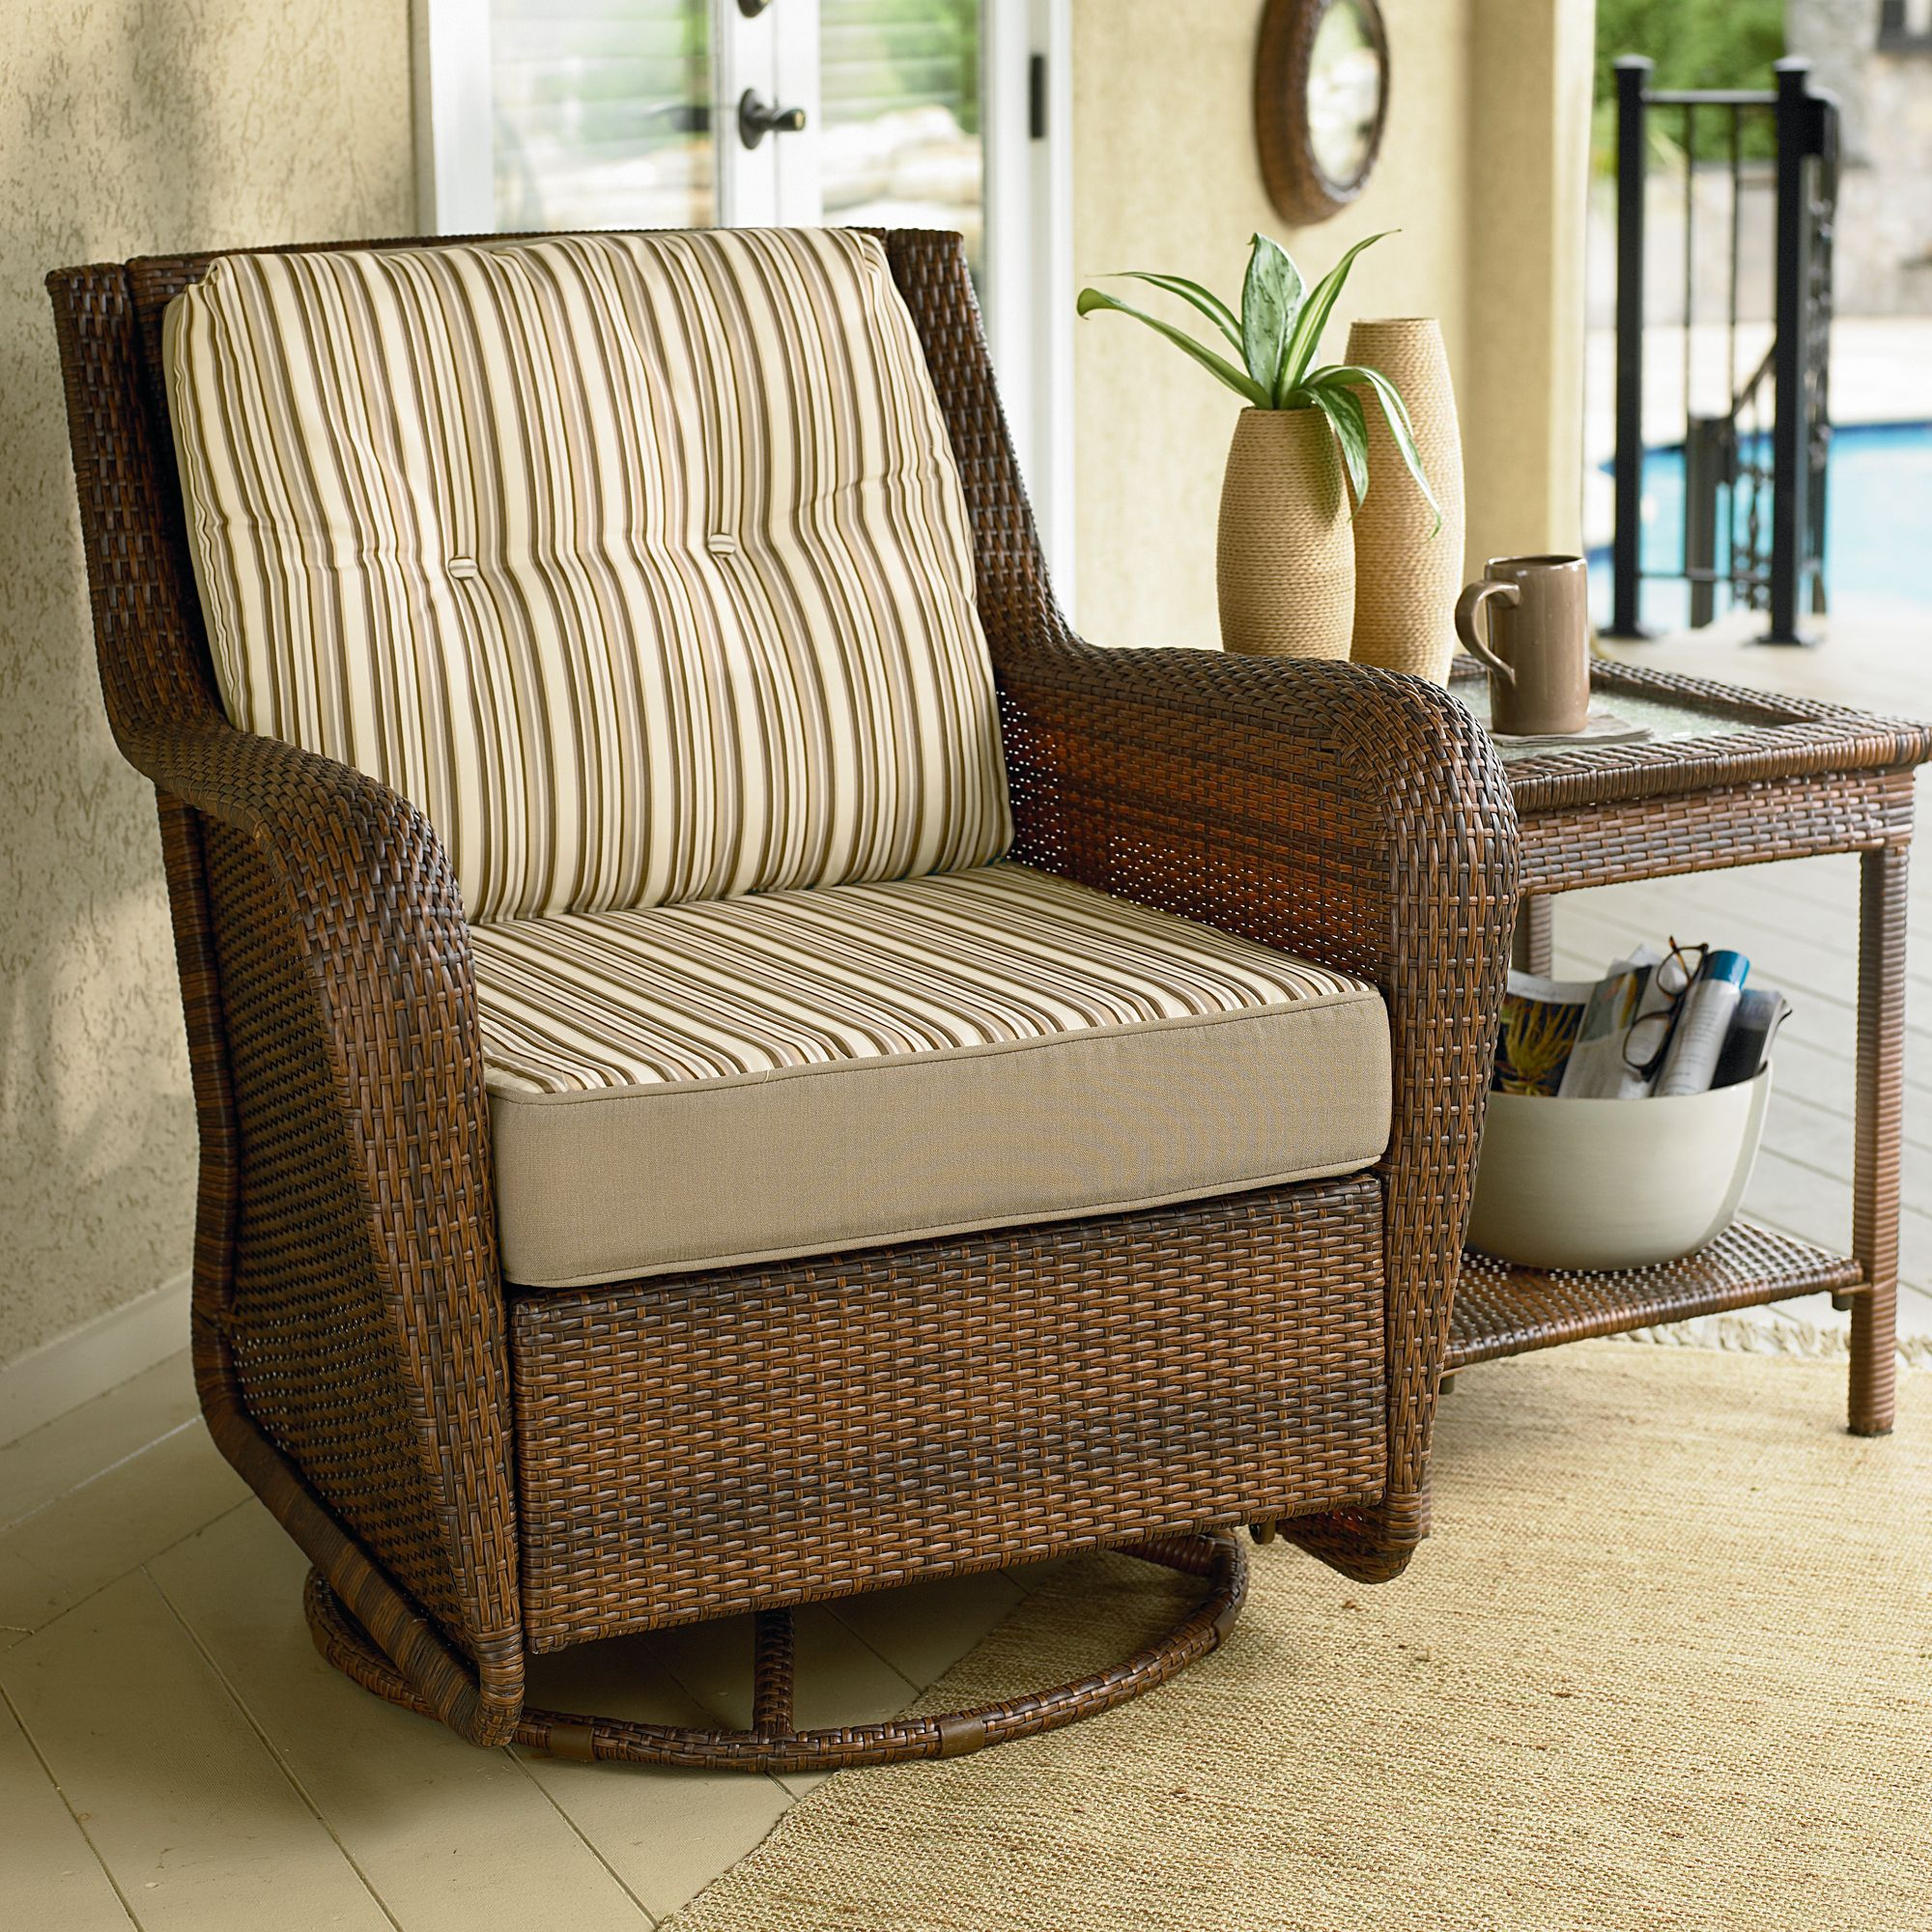 Luxury Swivel Glider Chair: Relax in Style with Classy Ideas from Sears swivel glider patio chairs